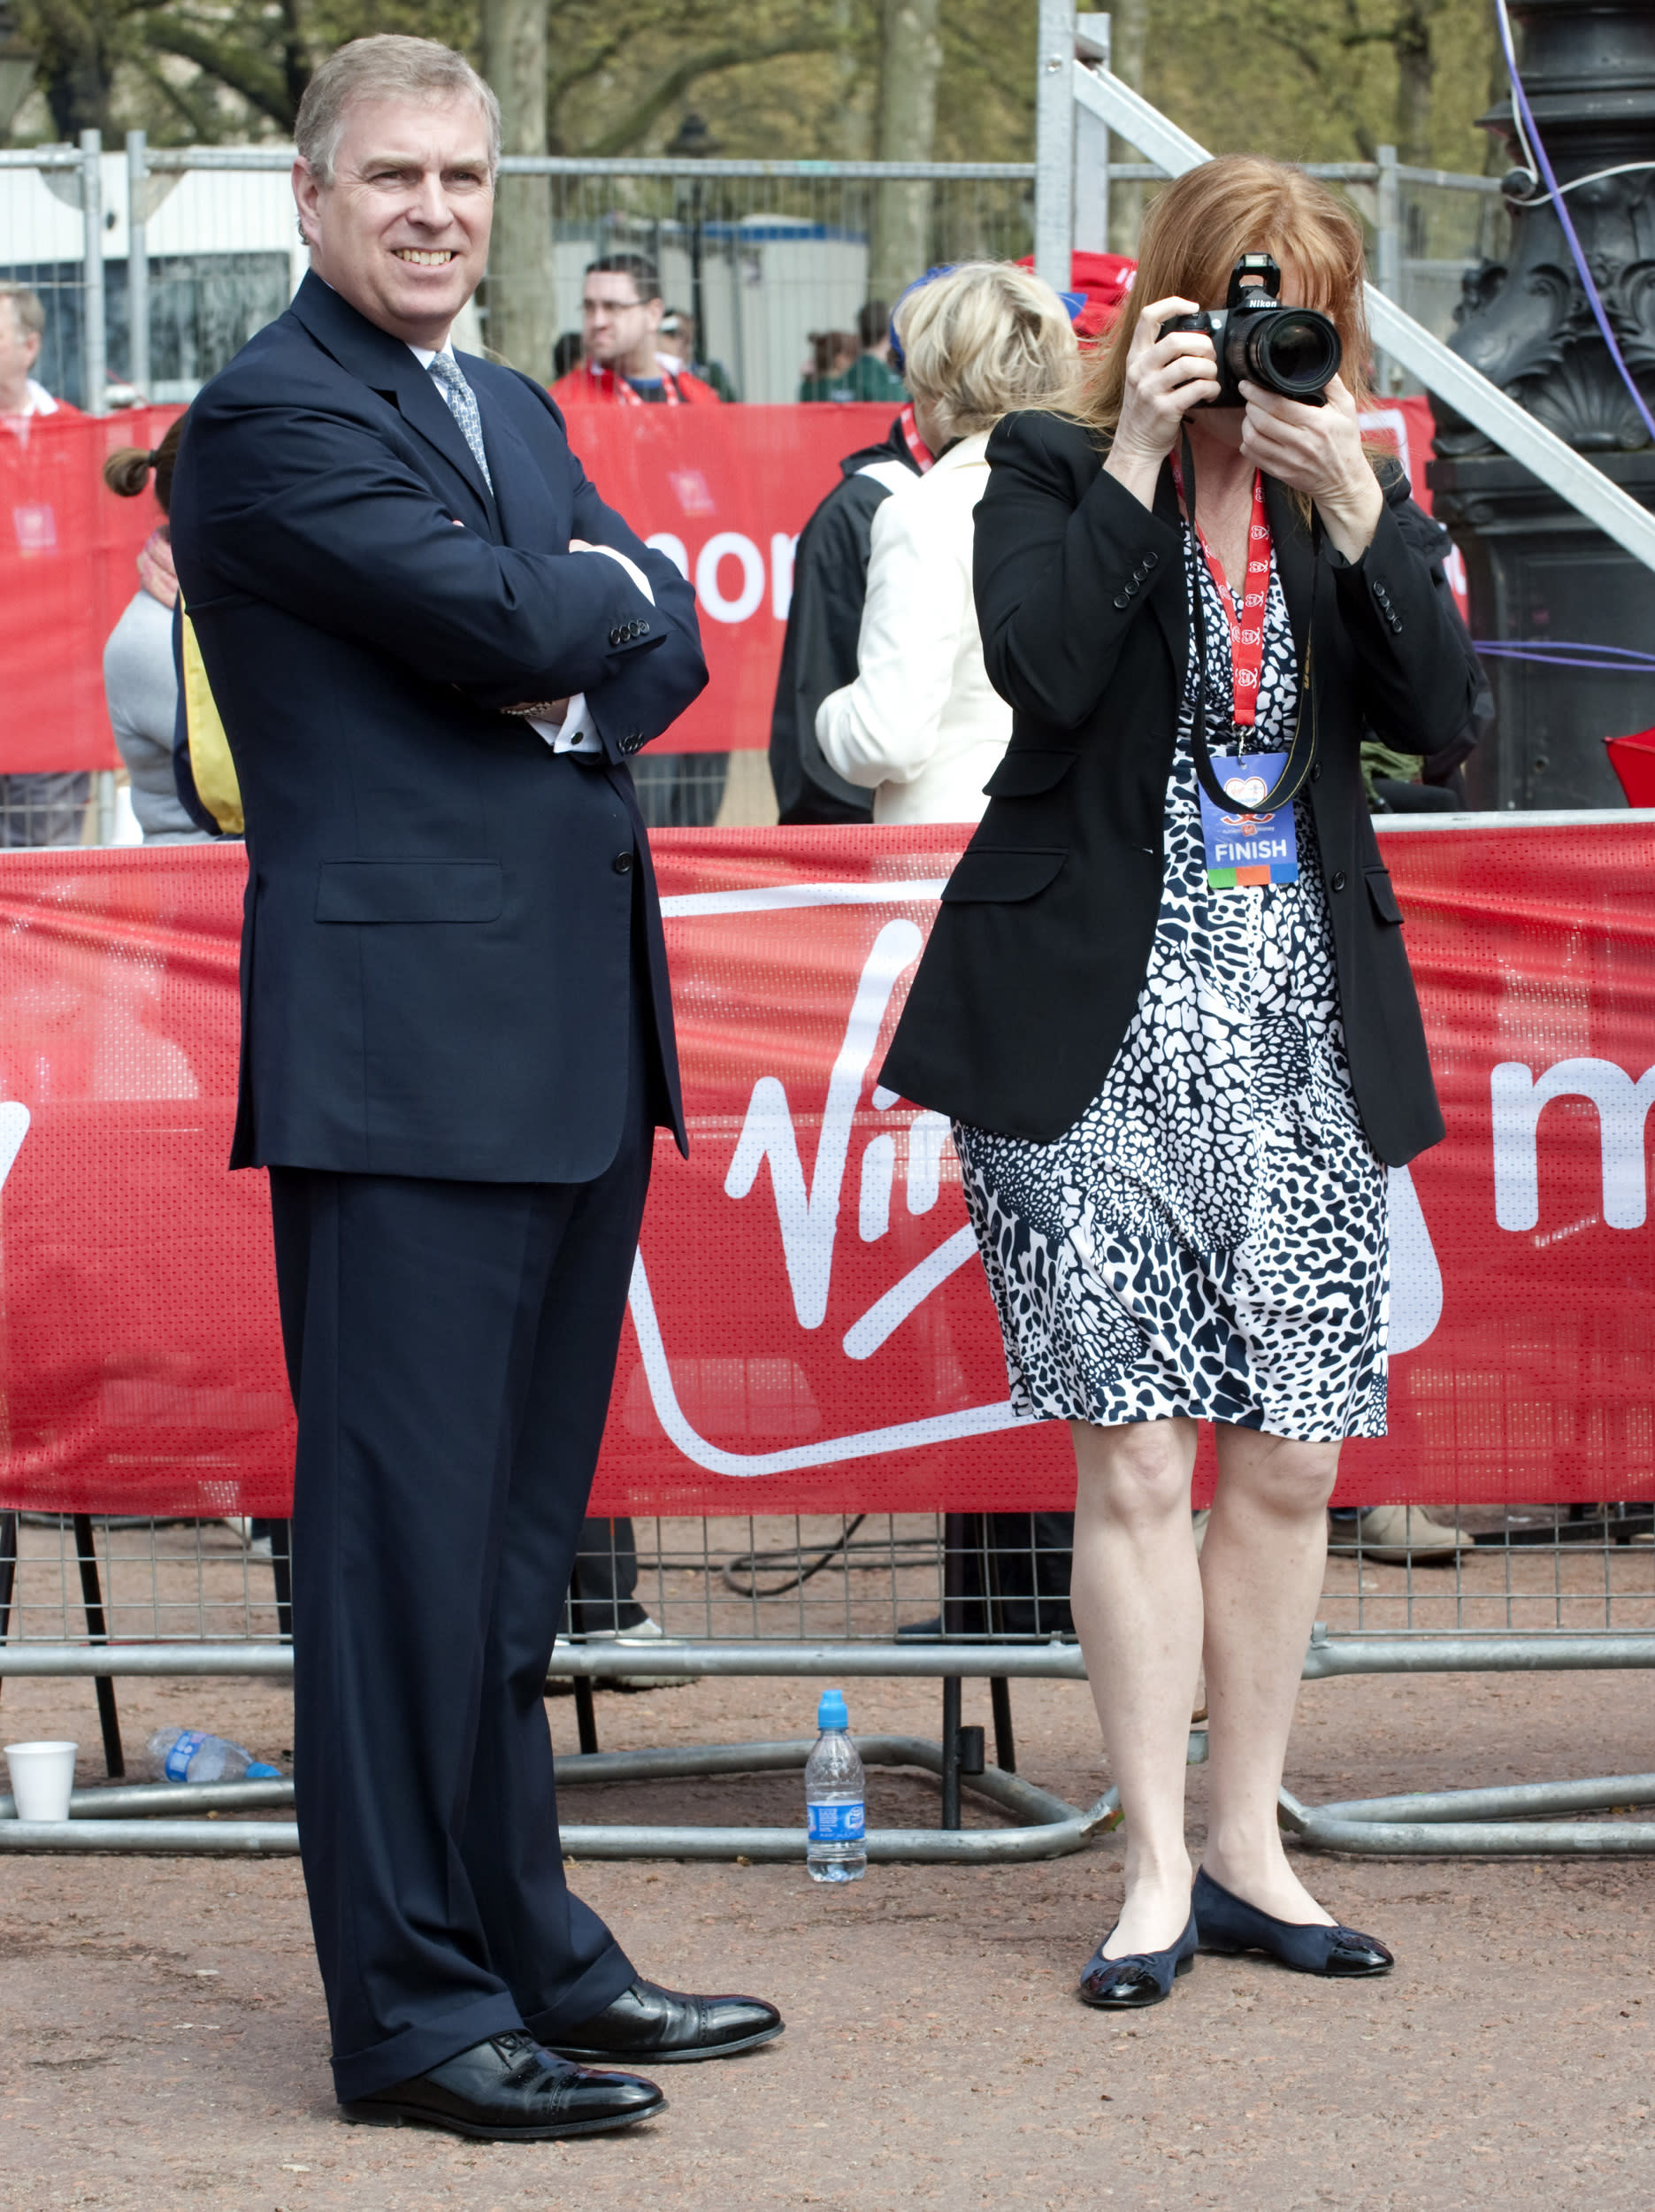 The Duchess of York, Sarah Ferguson and Prince Andrew at the finish of the 2010 London Marathon, on the Mall in central London.